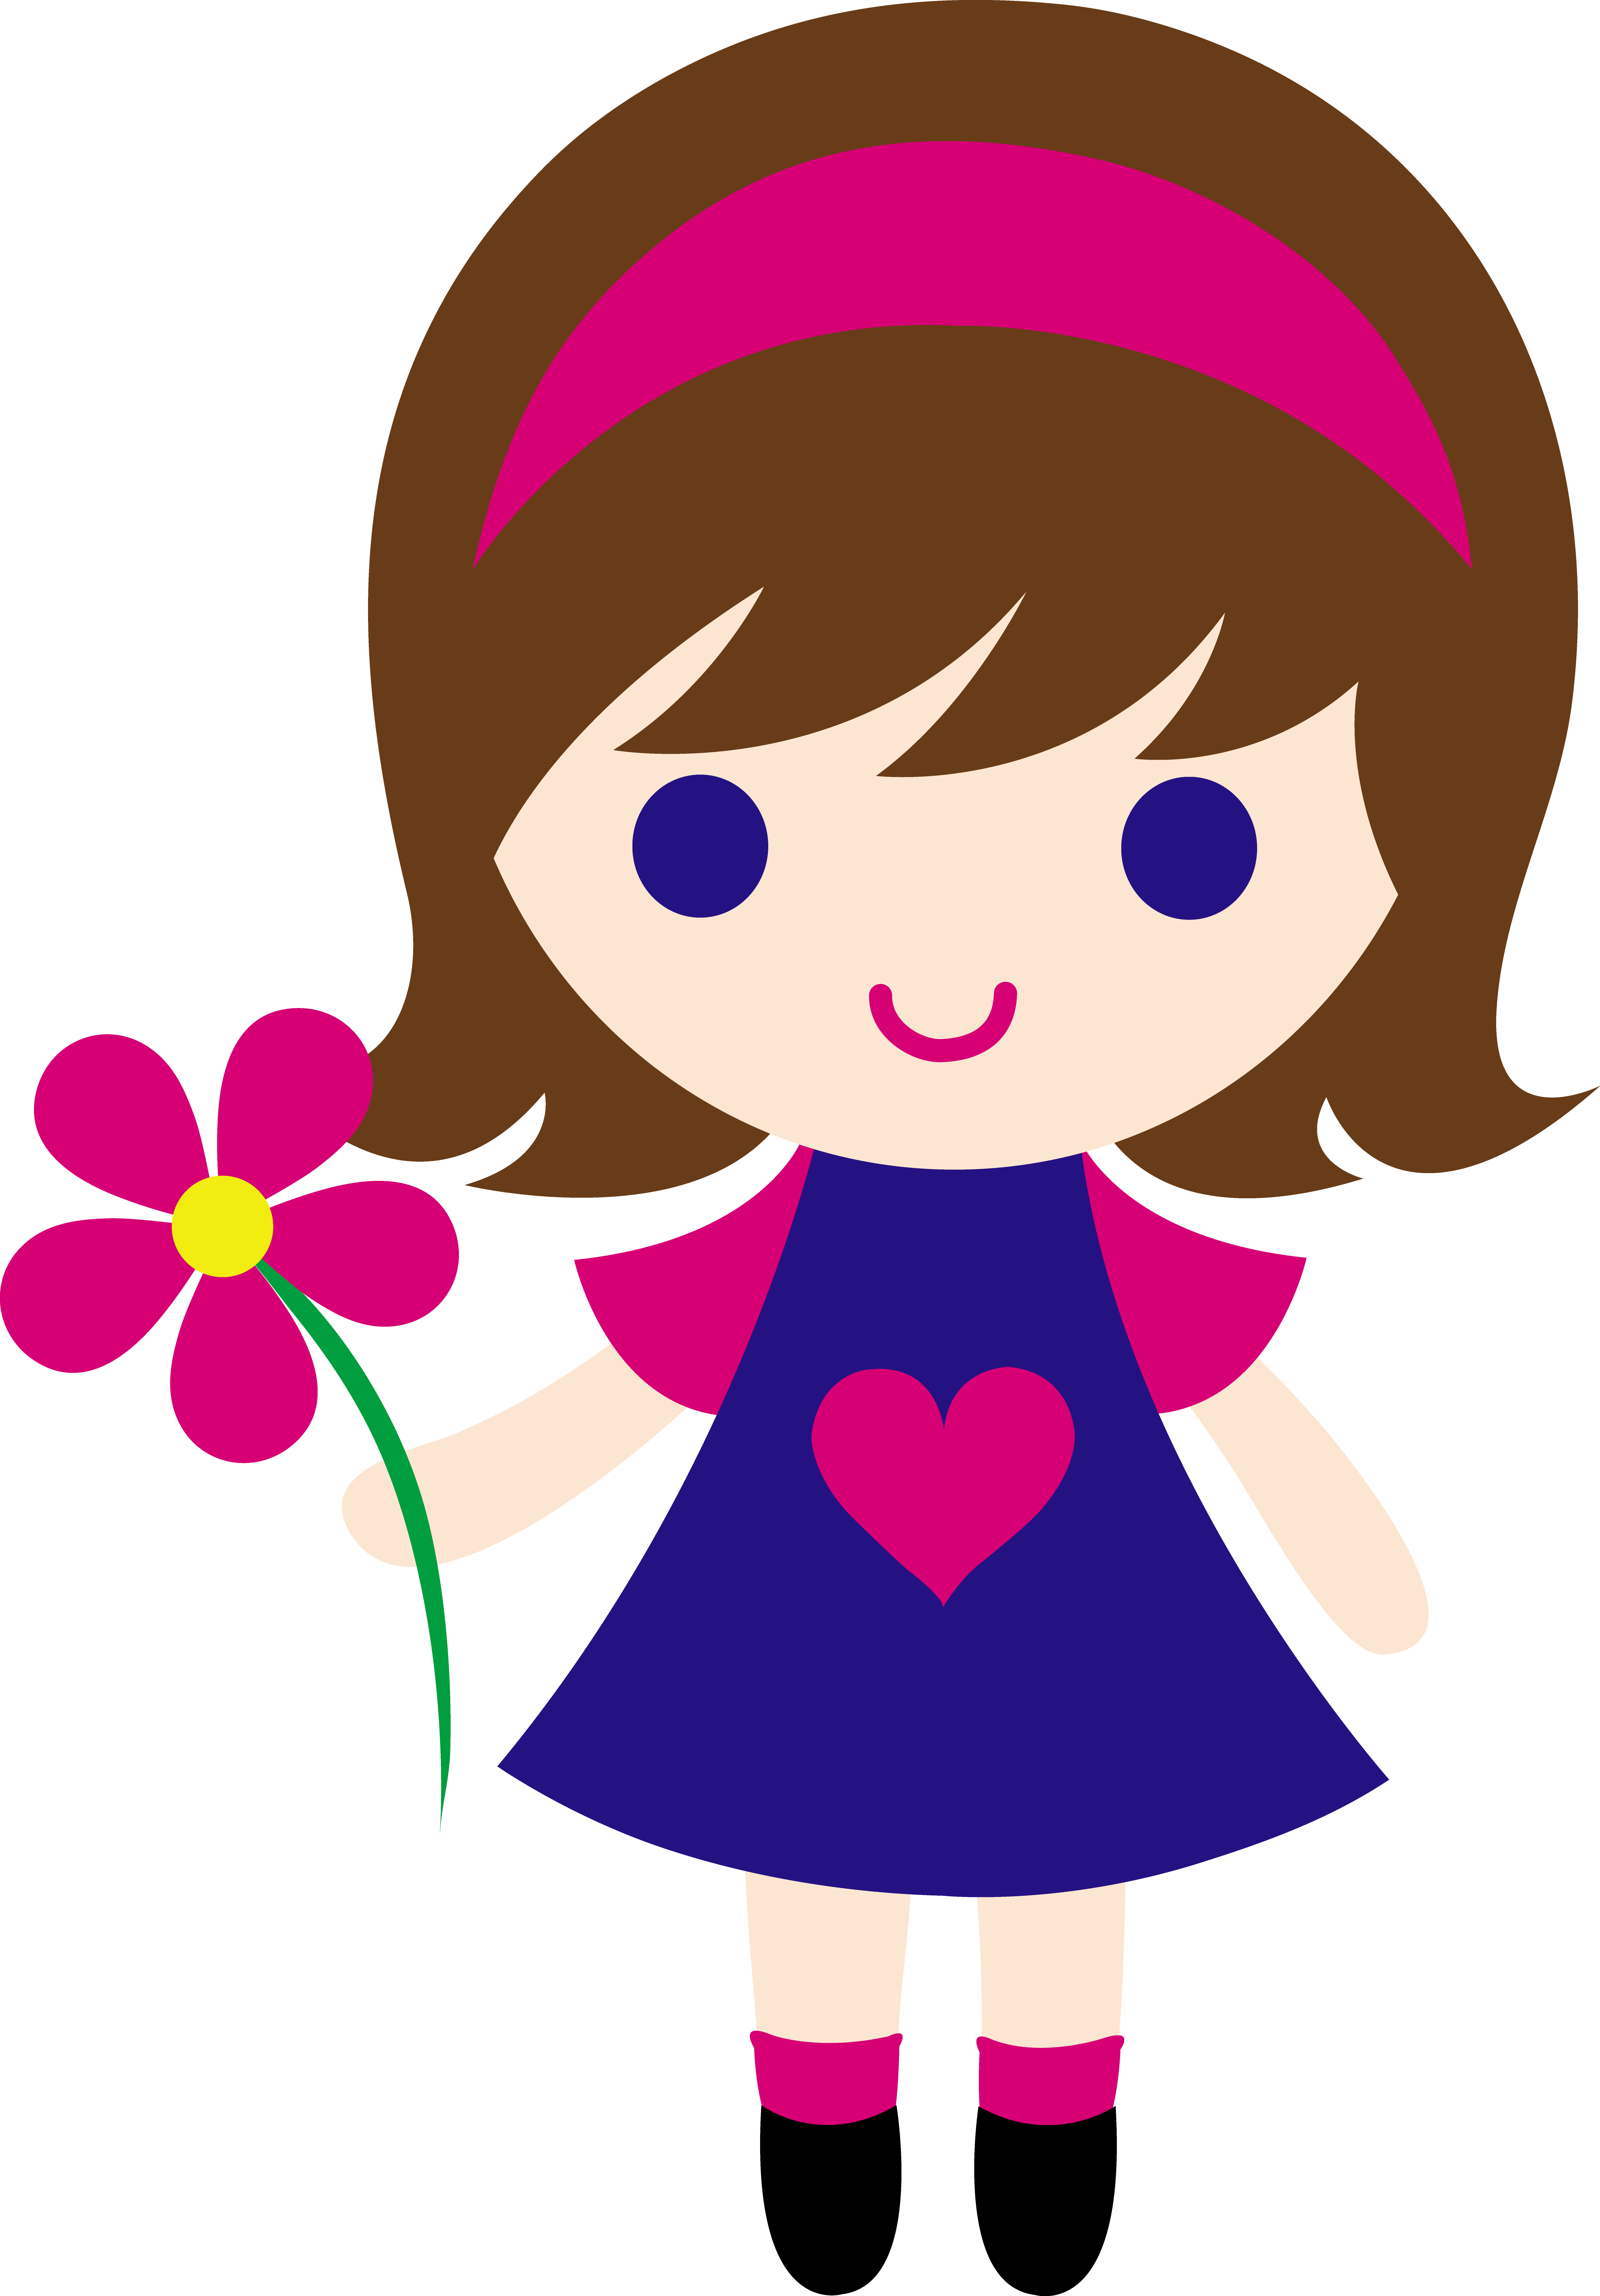 Girl Clipart Images.